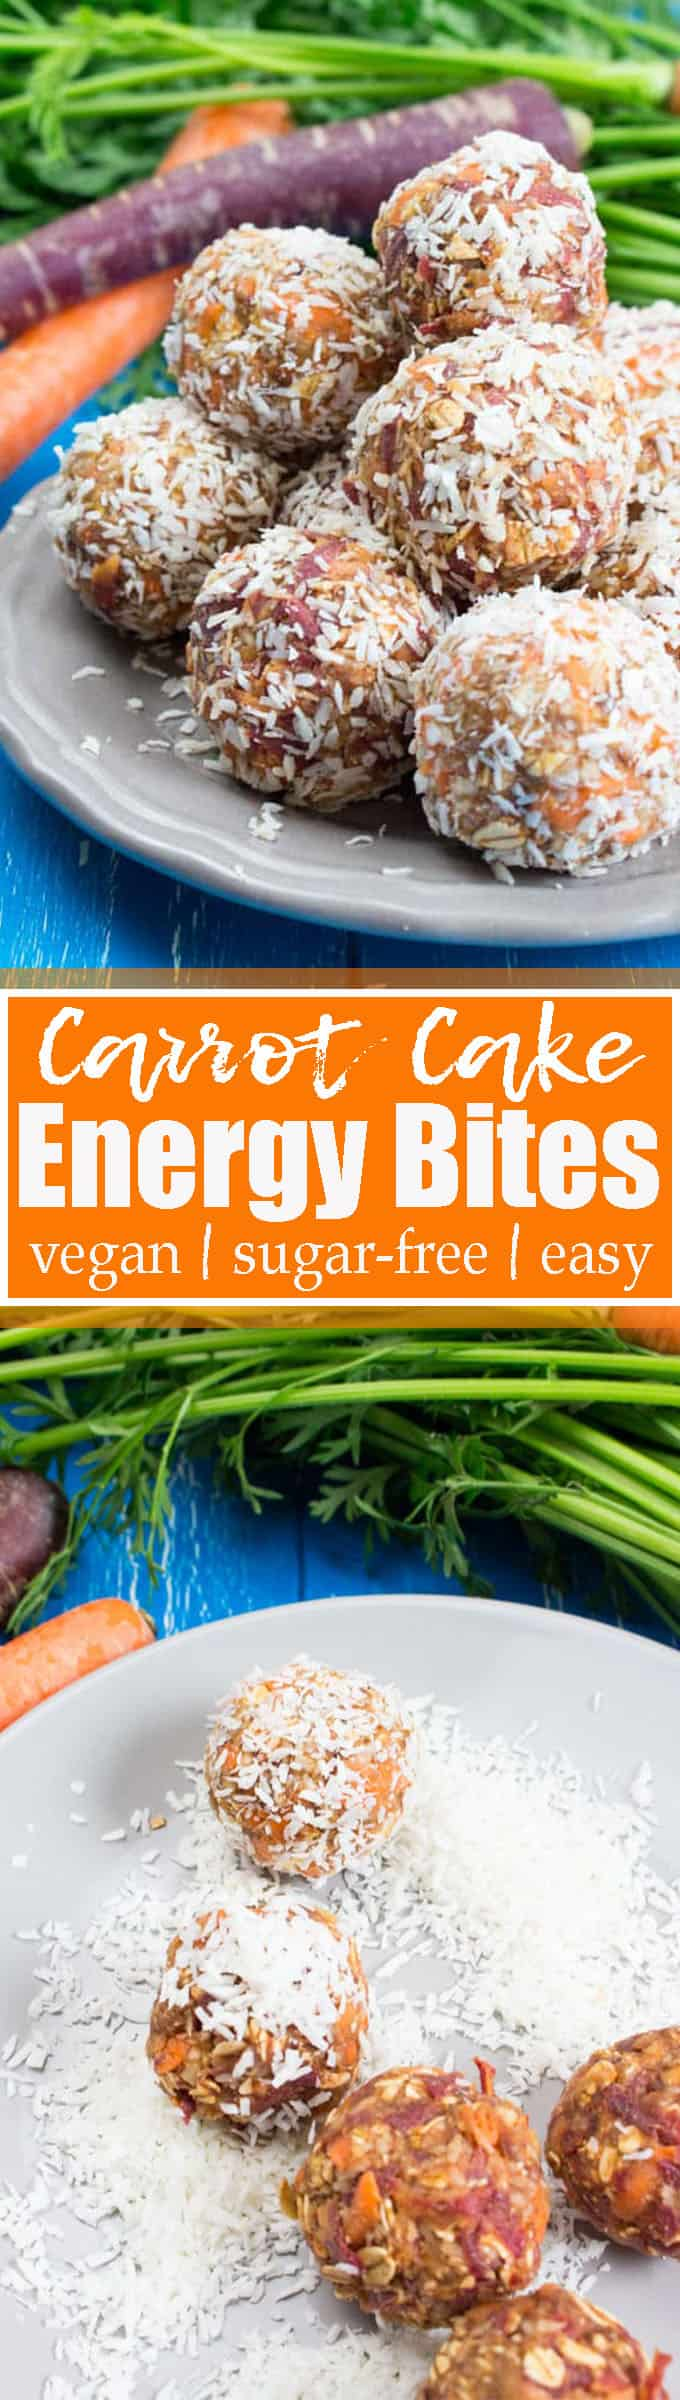 Are you looking for a healthy snack? Then these carrot cake energy bites are perfect! They're vegan, sugar-free, easy, and kid-friendly! Find more vegan snacks and vegan recipes at veganheaven.org!